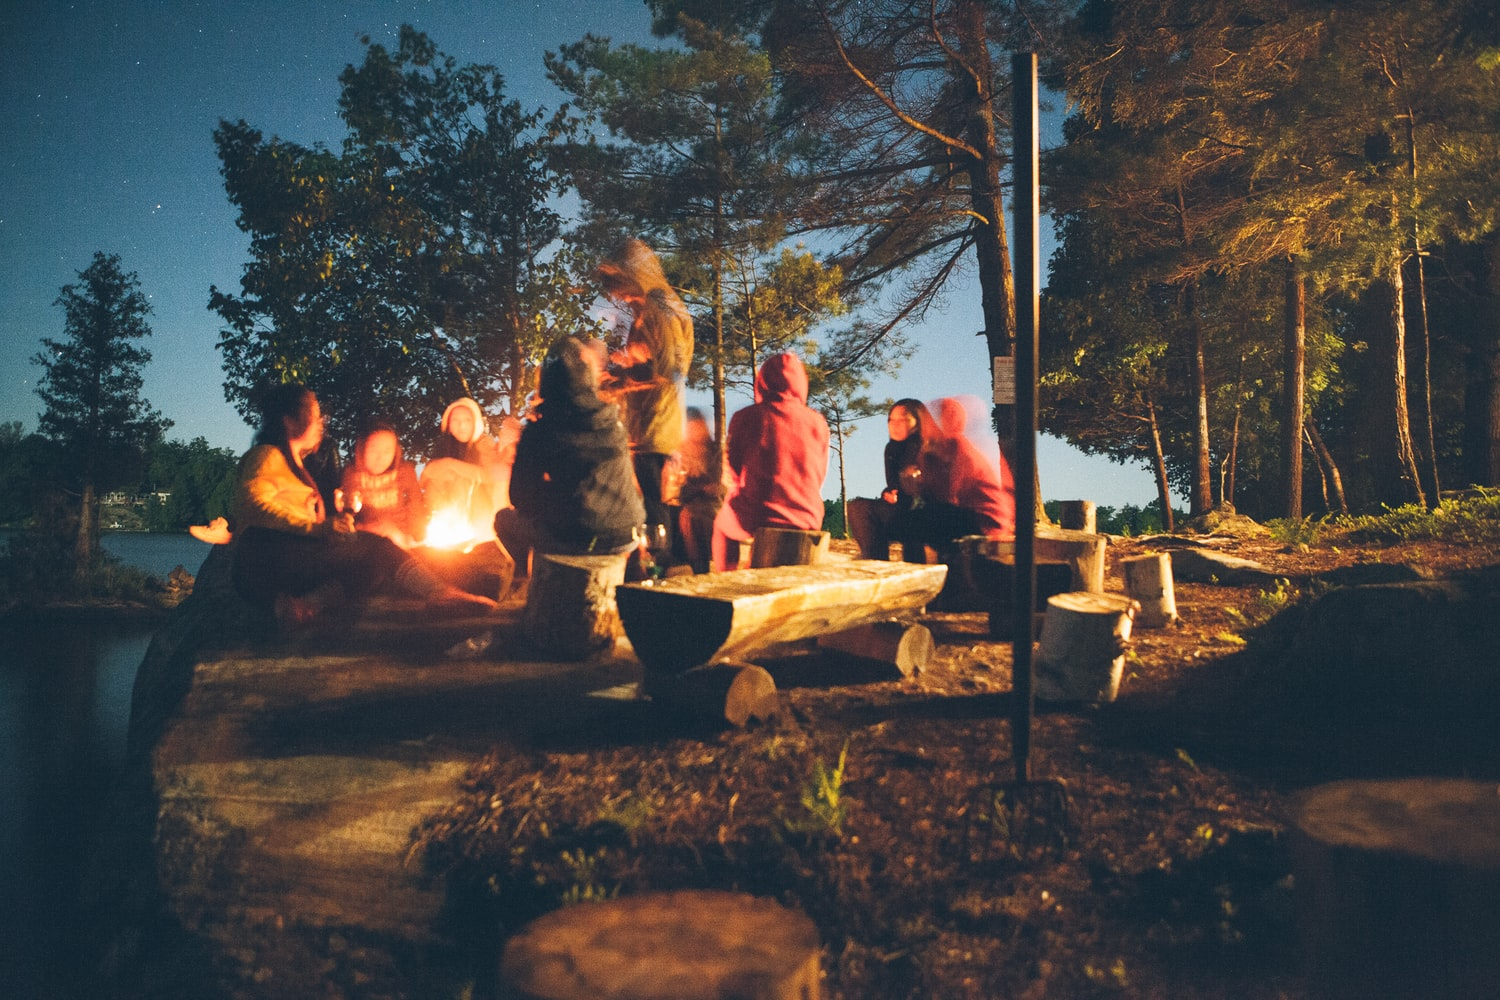 Group of people are having fun chatting together with a campfire at the center of them